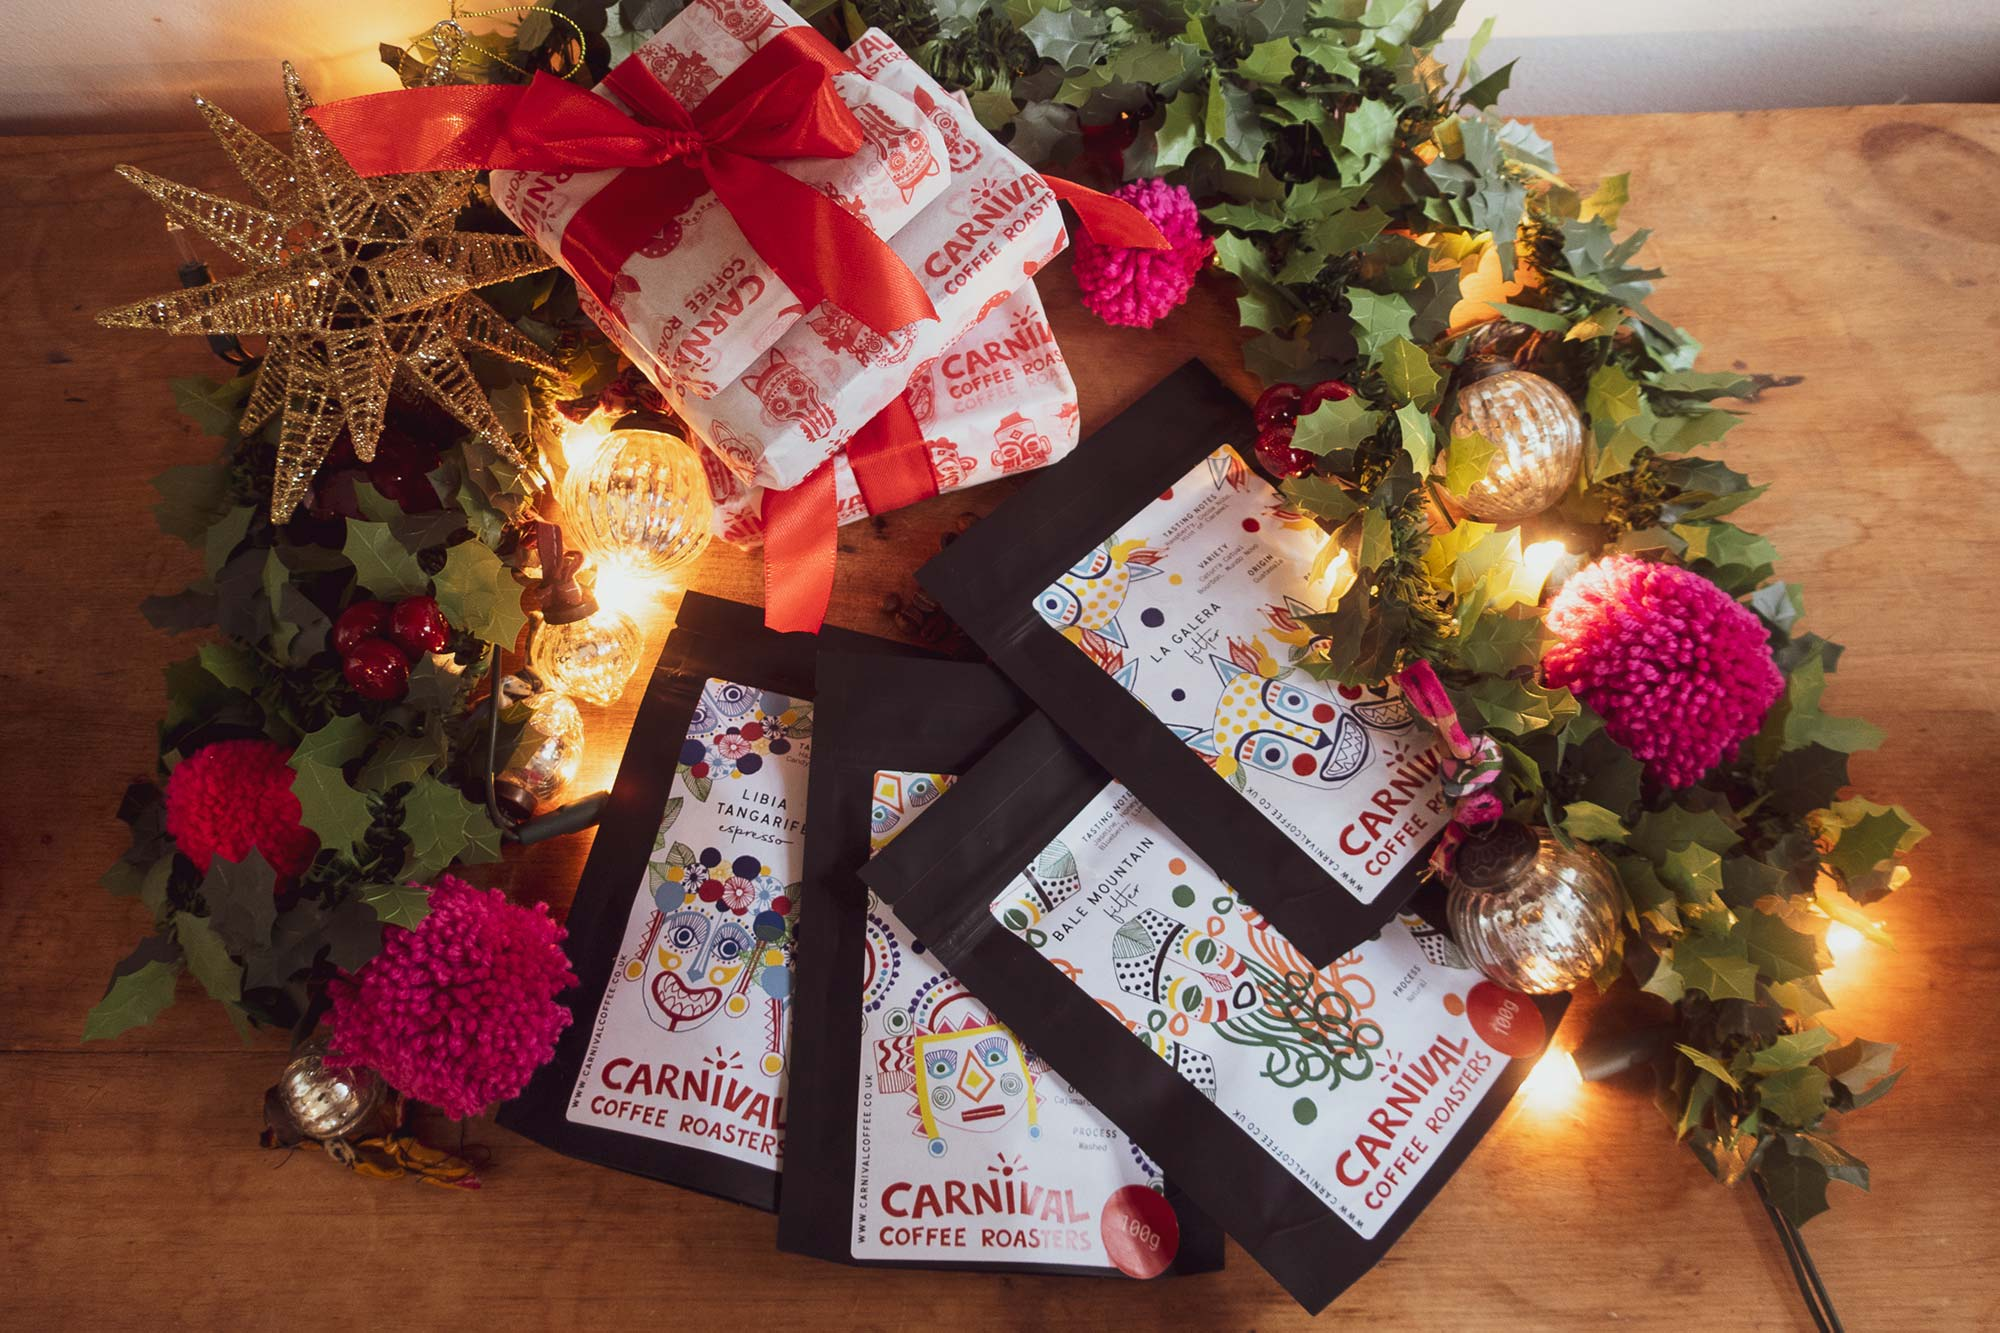 Carnival Coffee for Christmas